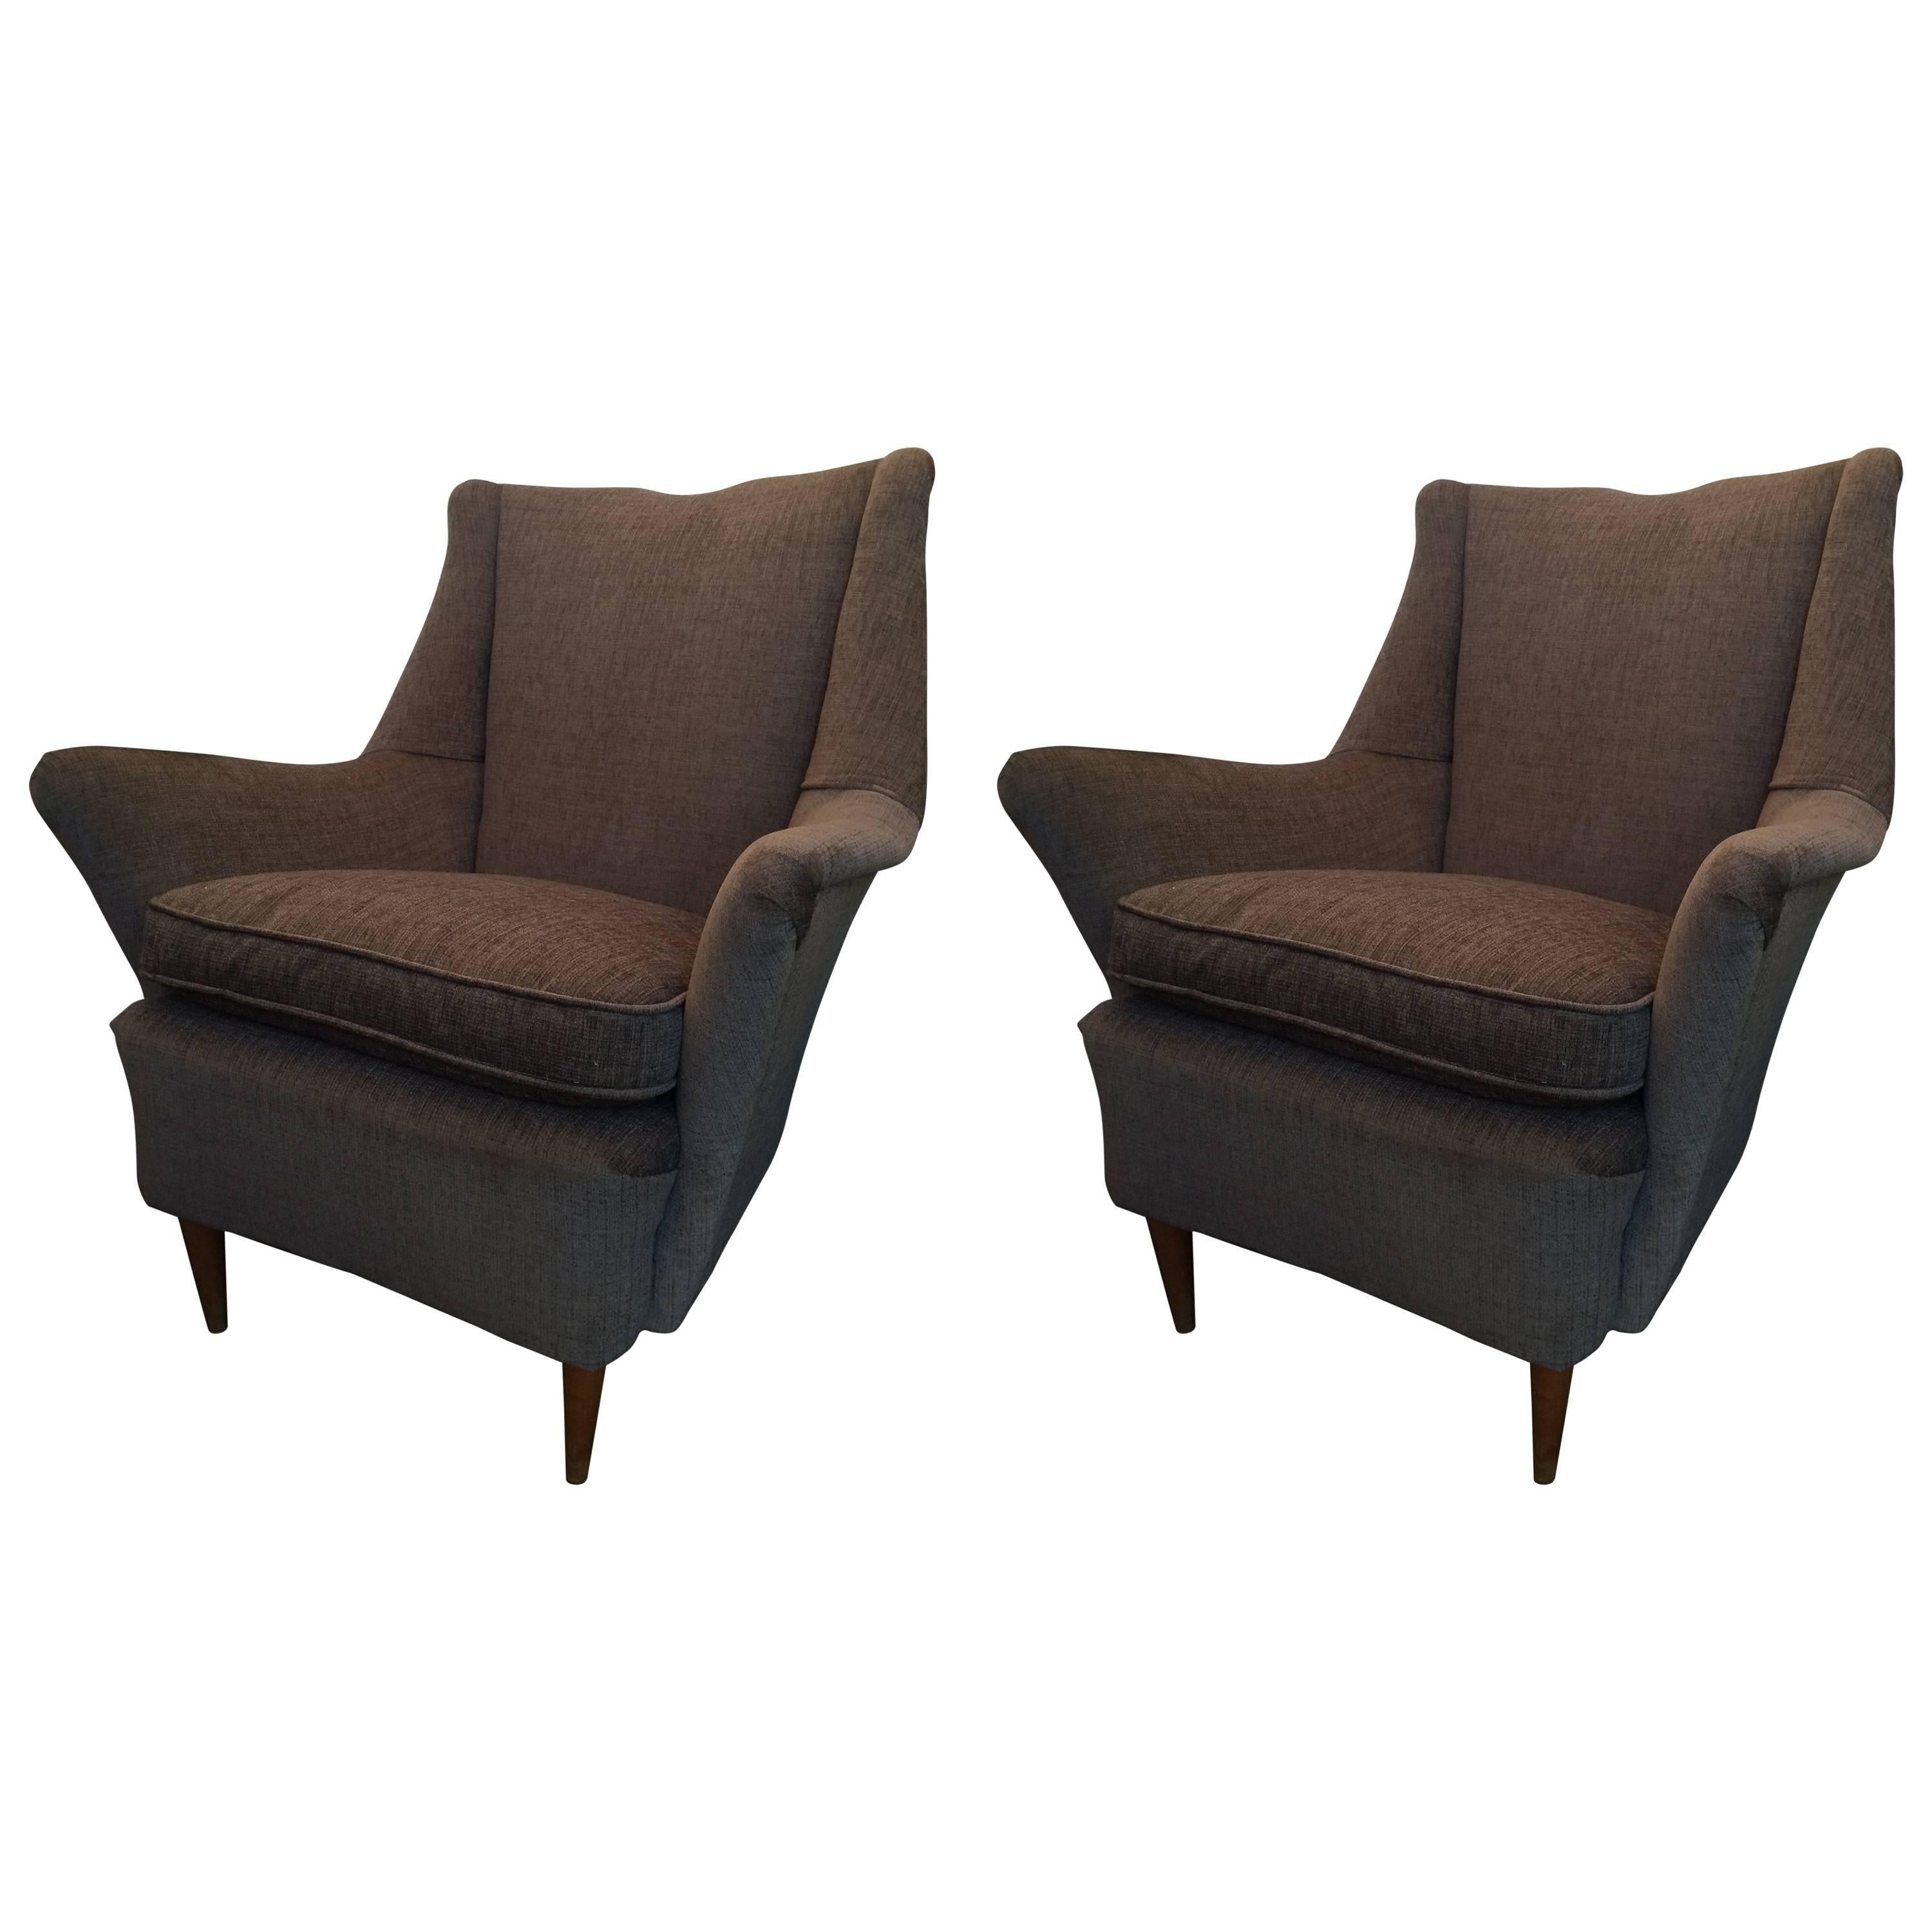 Pair of Vintage Armchairs in Gio Ponti Style